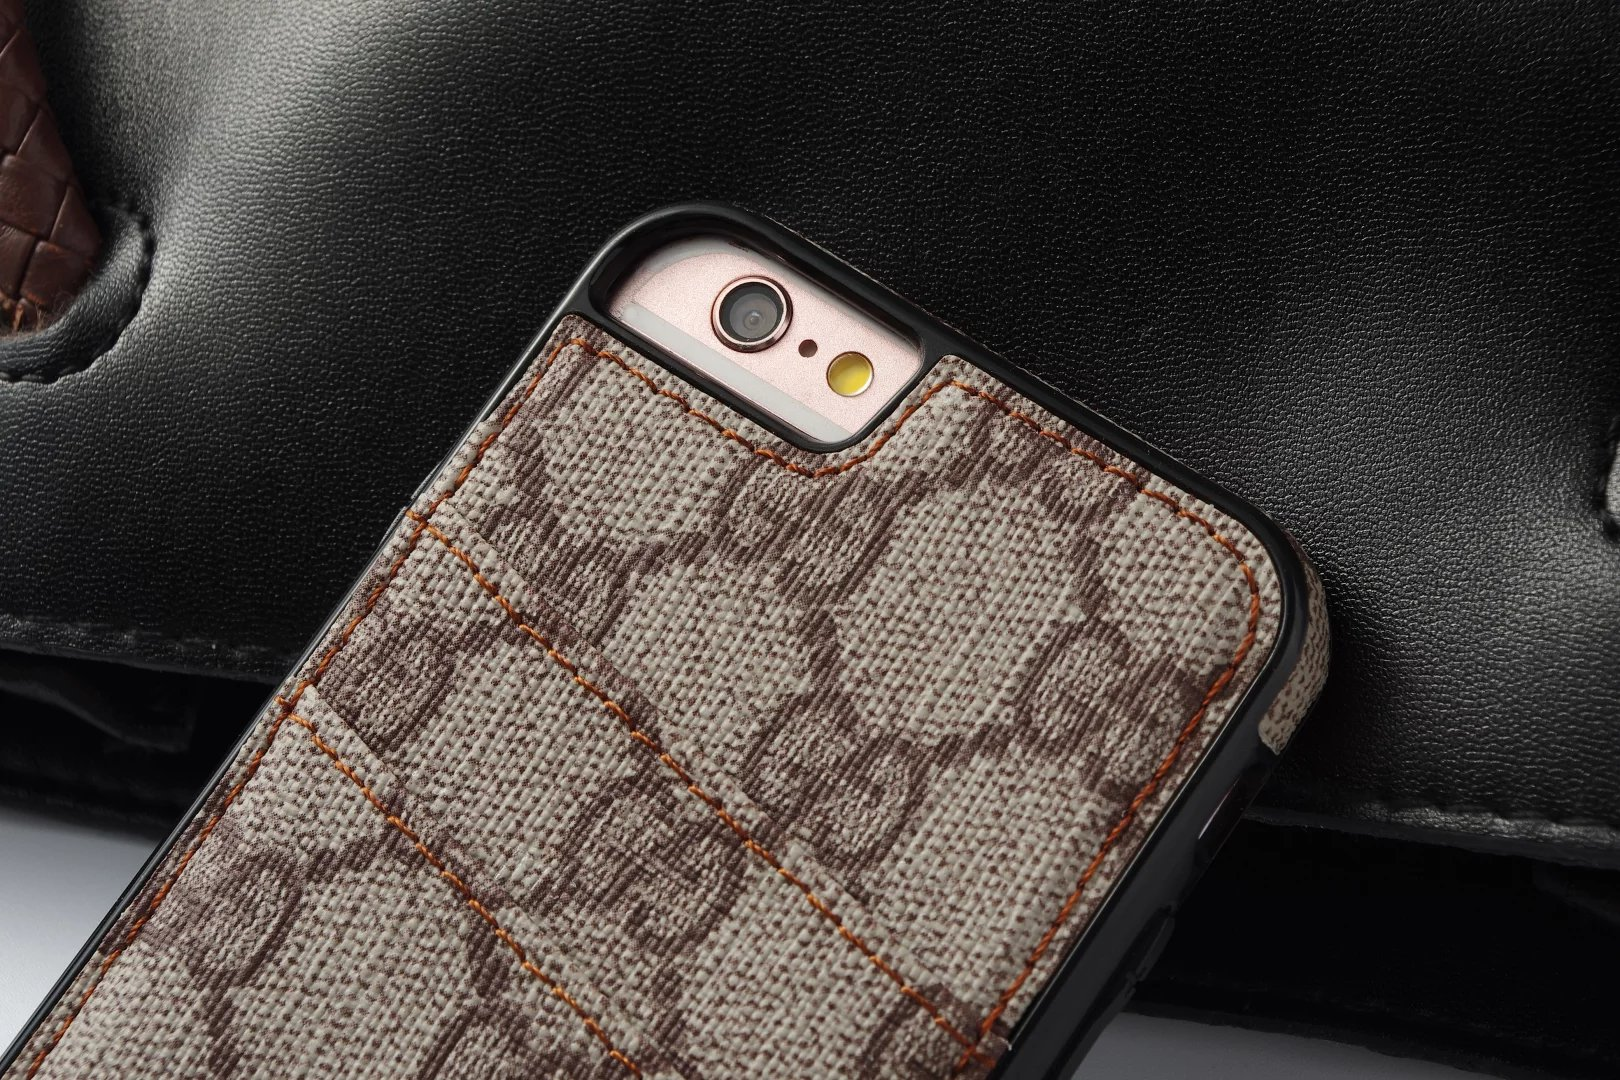 iphone 6 Plus carrying case best iphone covers 6 Plus fashion iphone6 plus case top cases for iphone 6 case iphone hard cell phone cases battery capacity iphone 6 mobile phone protectors where to get iphone 6 cases